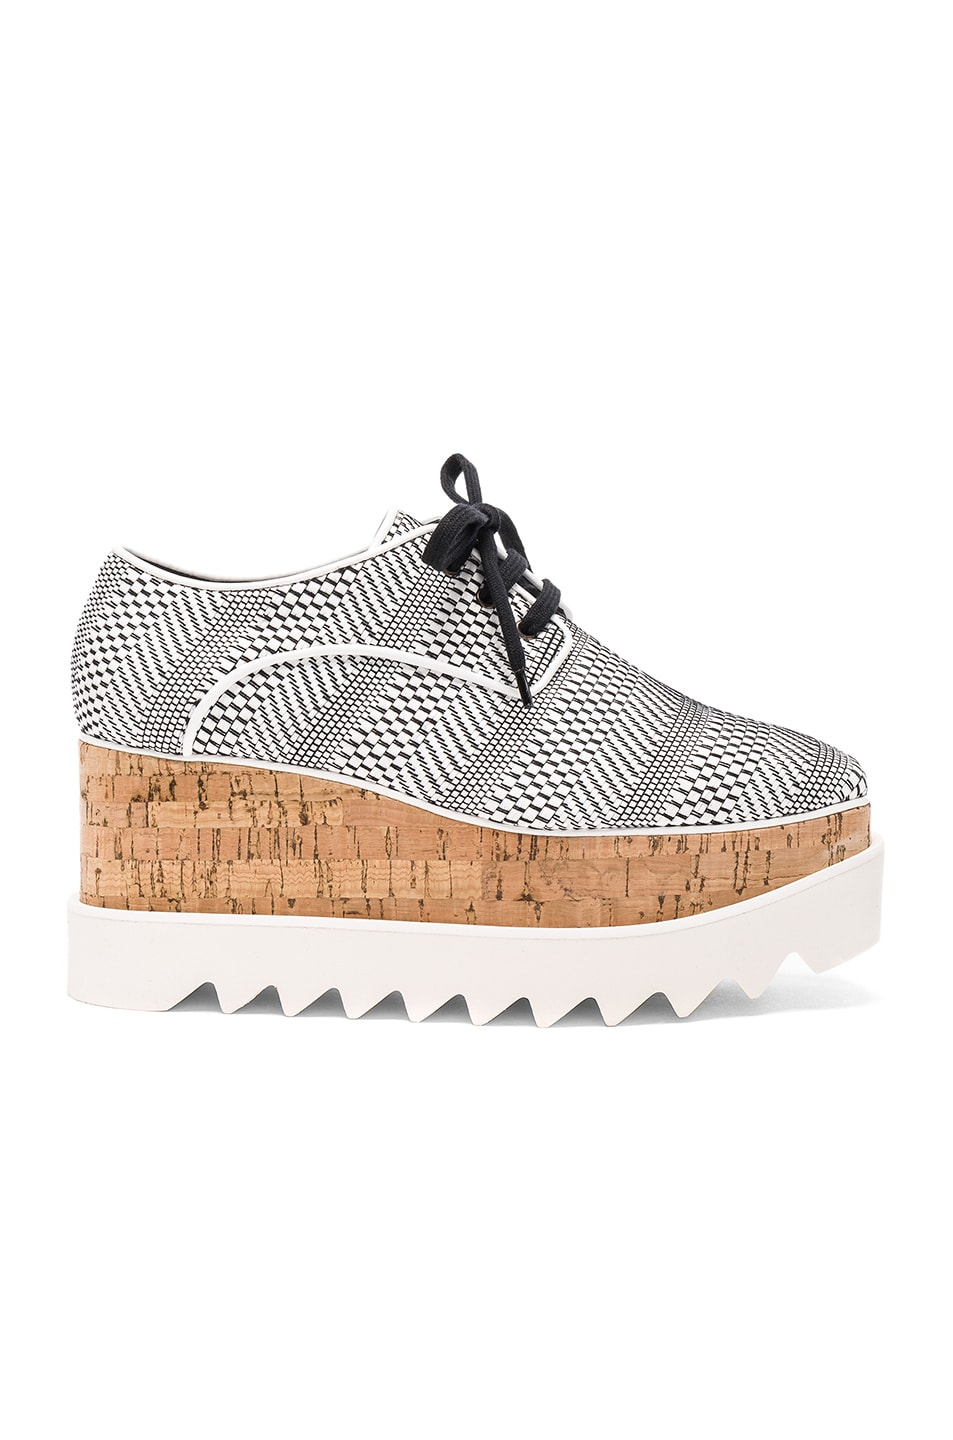 Stella Mccartney Leathers PLATFORM SHOES IN WHITE, CHECKERED & PLAID.